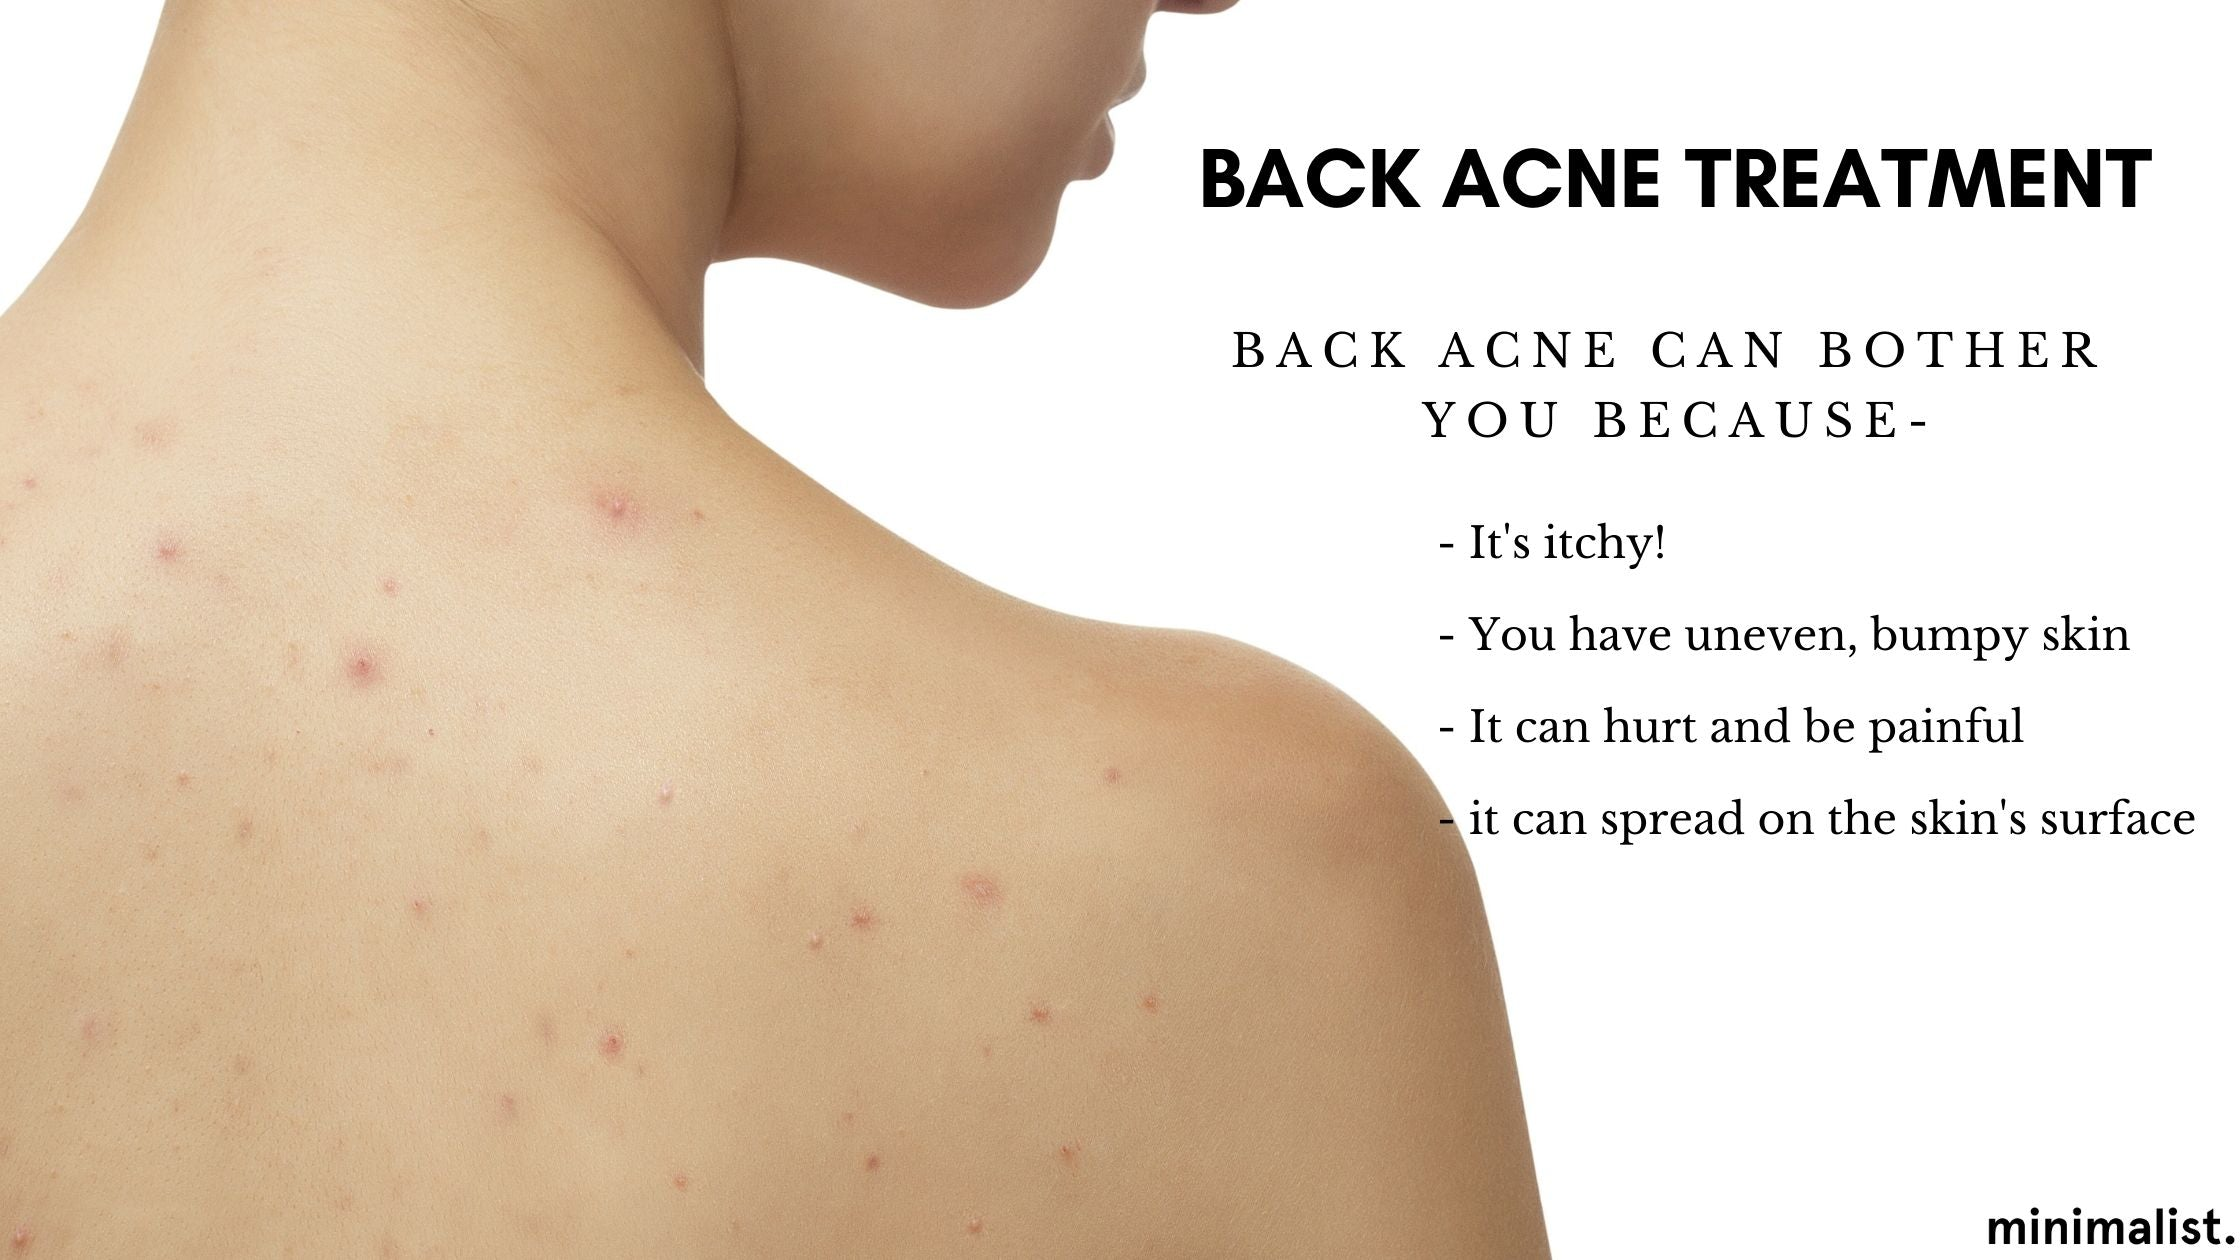 What Does Back Acne Look Like?